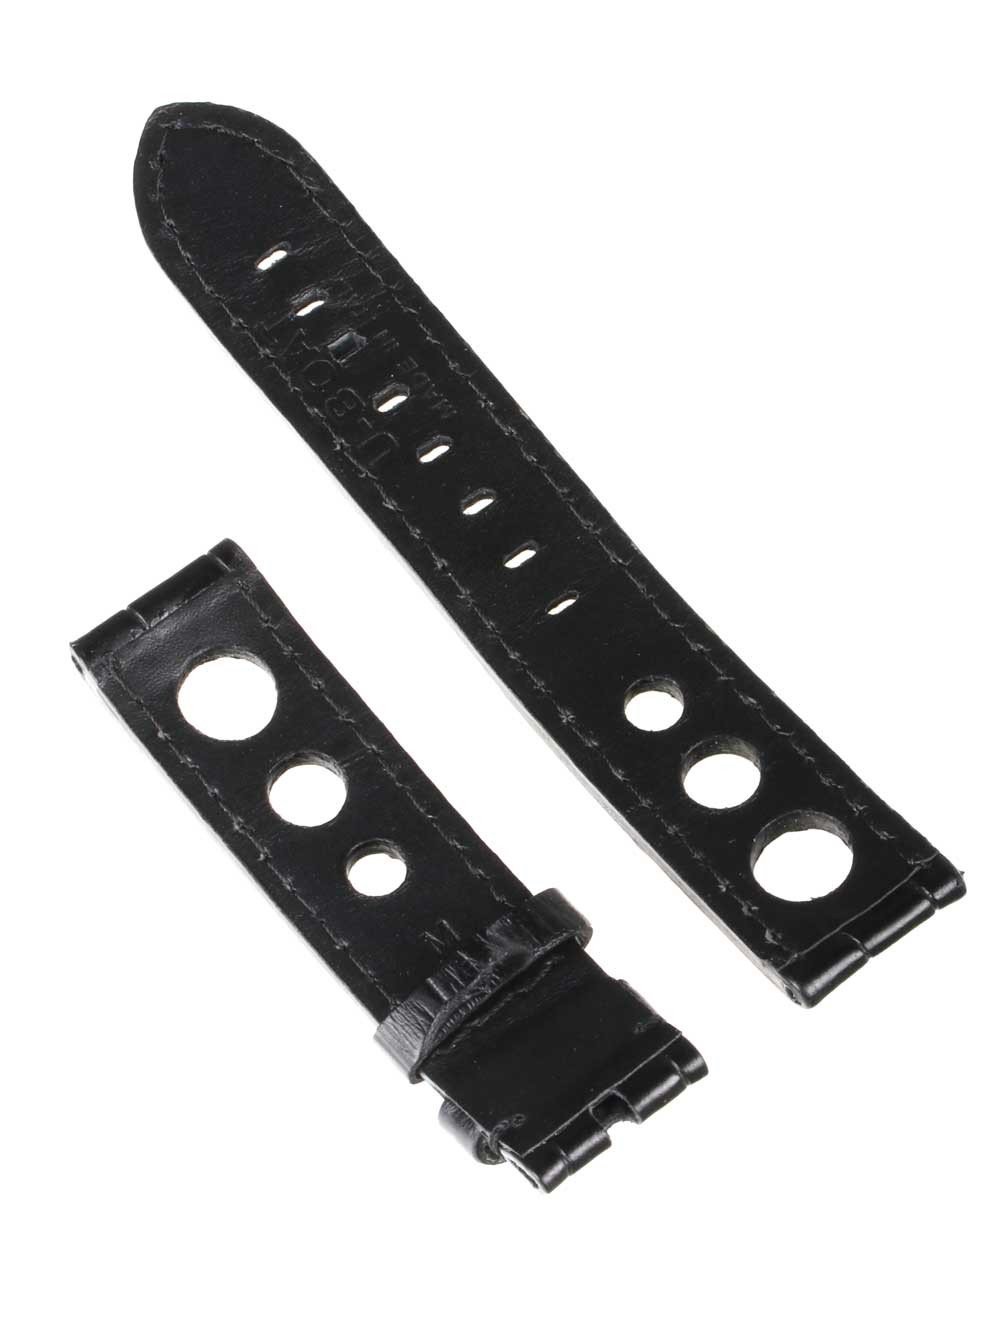 U-STRAP 1659 SS 20/20 - without buckle